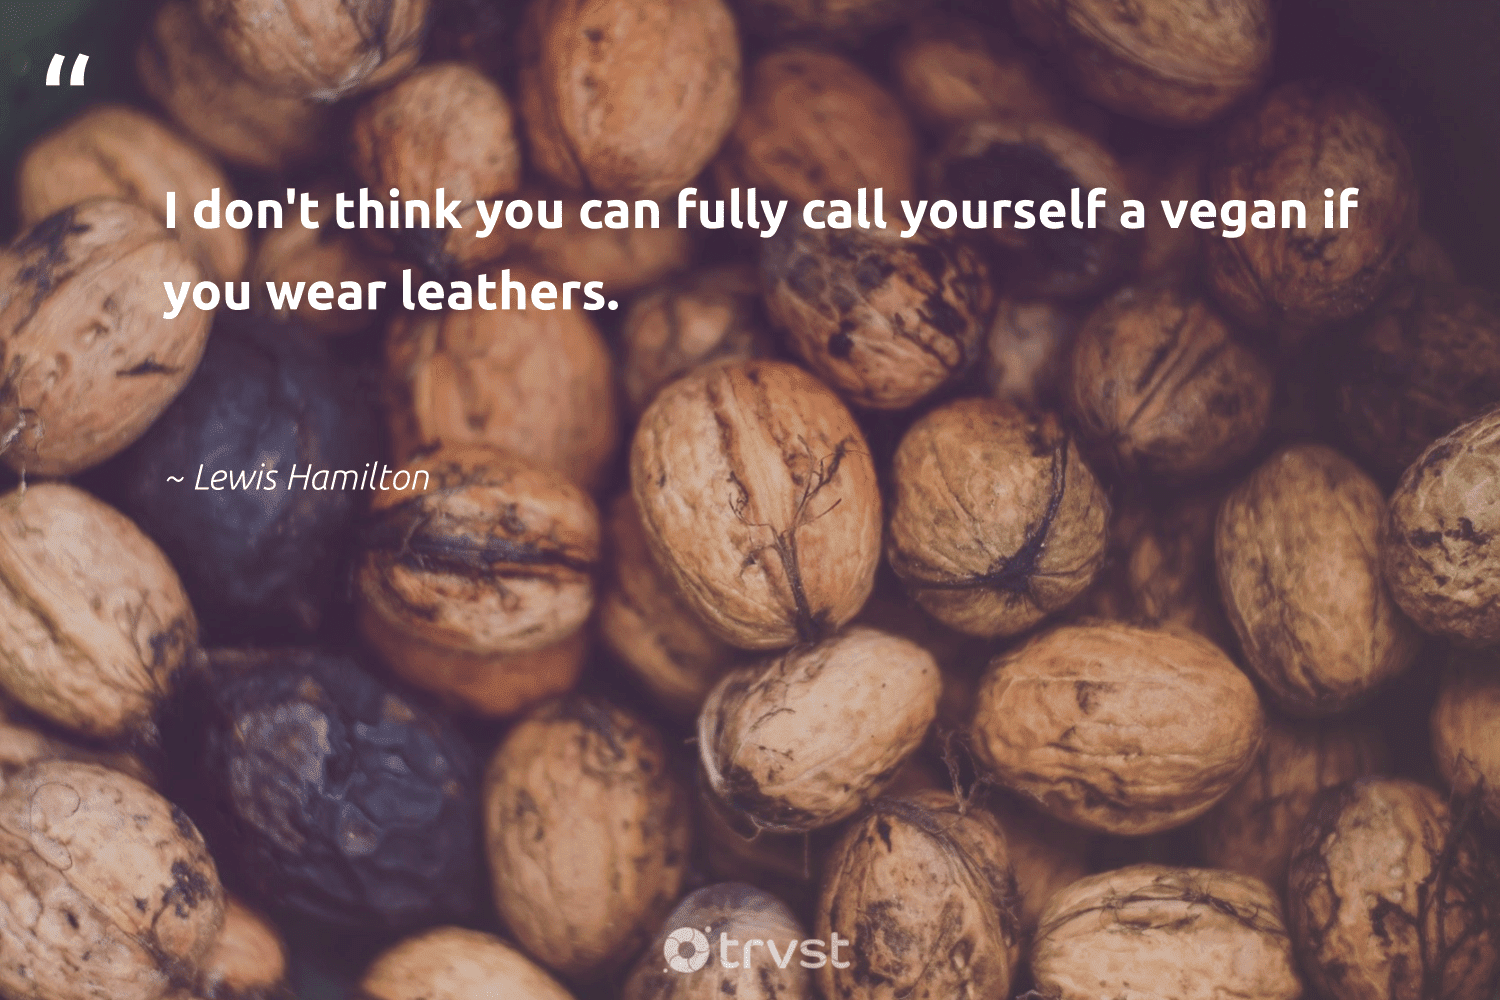 """I don't think you can fully call yourself a vegan if you wear leathers.""  - Lewis Hamilton #trvst #quotes #vegan #whatveganseat #green #sustainability #dogood #vegetarian #sustainable #bethechange #thinkgreen #veganfoodshare"